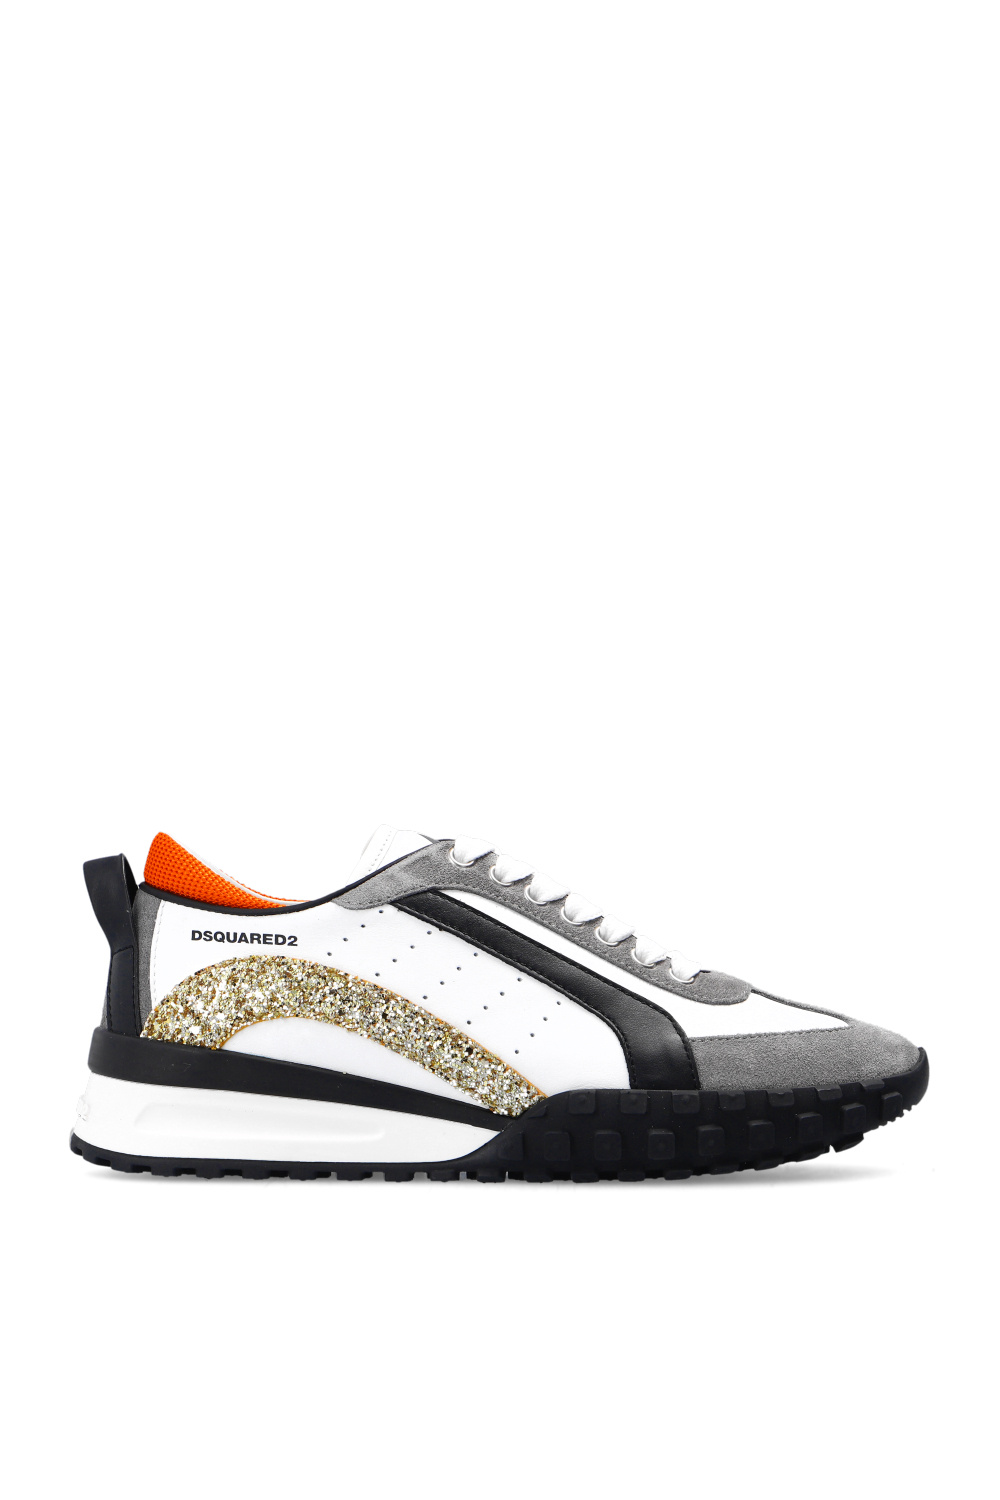 Dsquared2 'Legend' sneakers